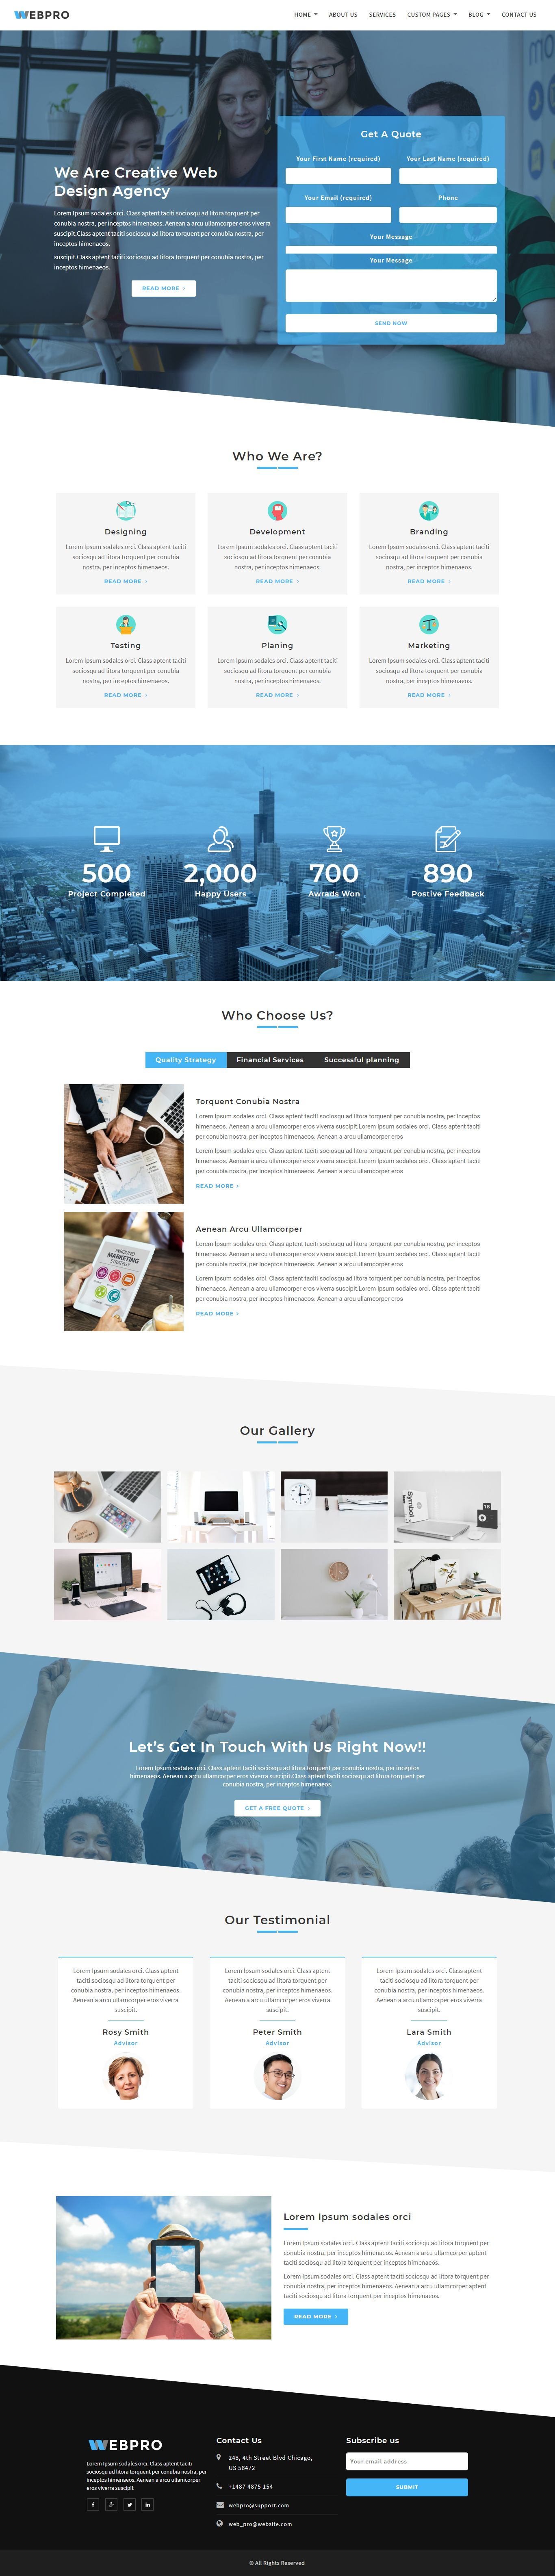 WebPro - Corporate WordPress Theme using Elementor Screenshot 2